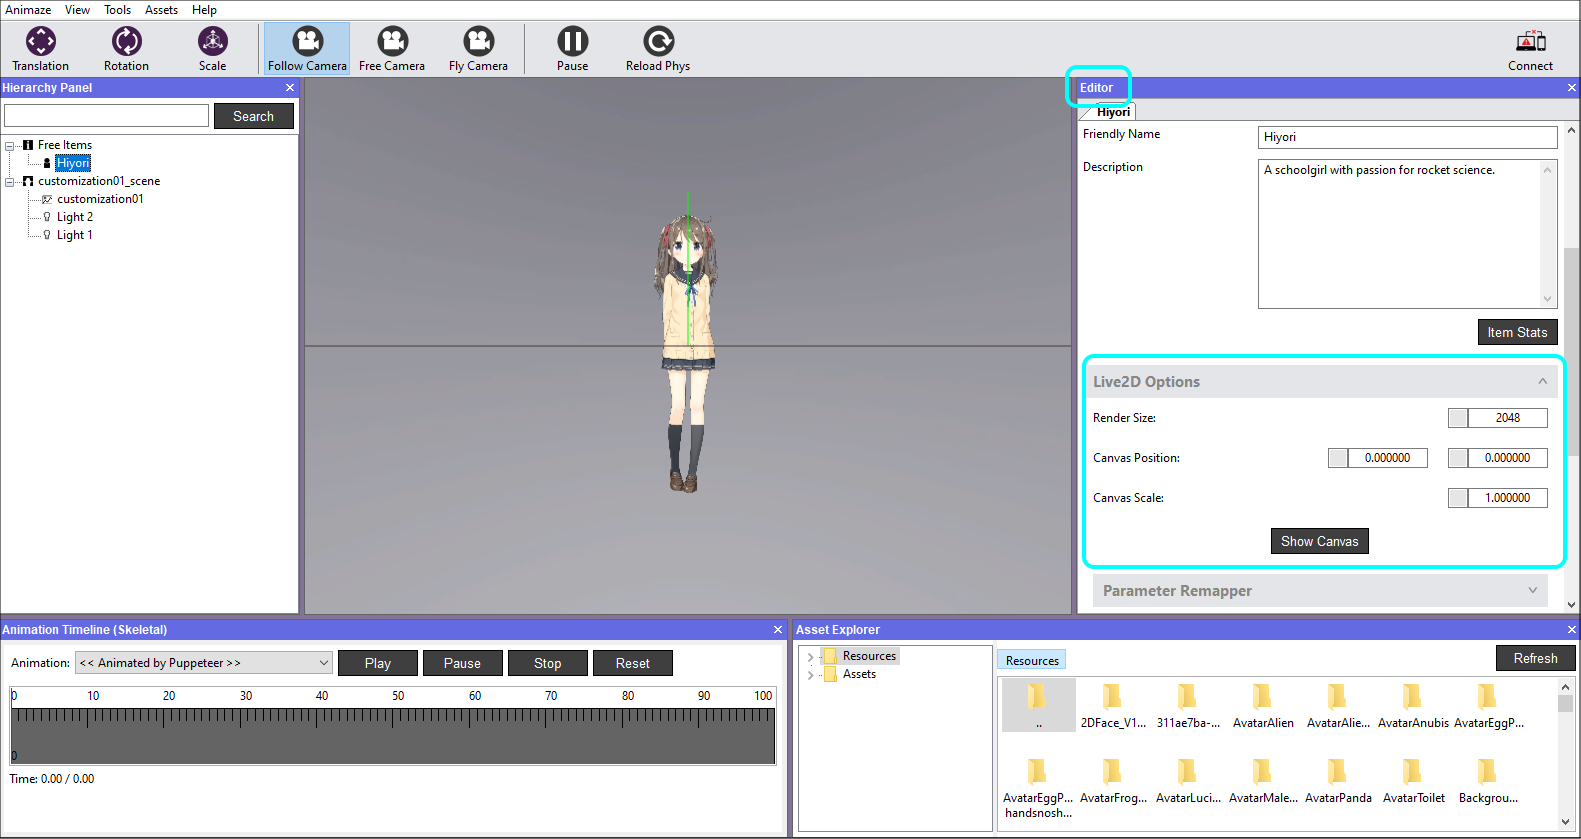 In the Editor Panel scroll down to the Live2D Options and click on it to expand the tab